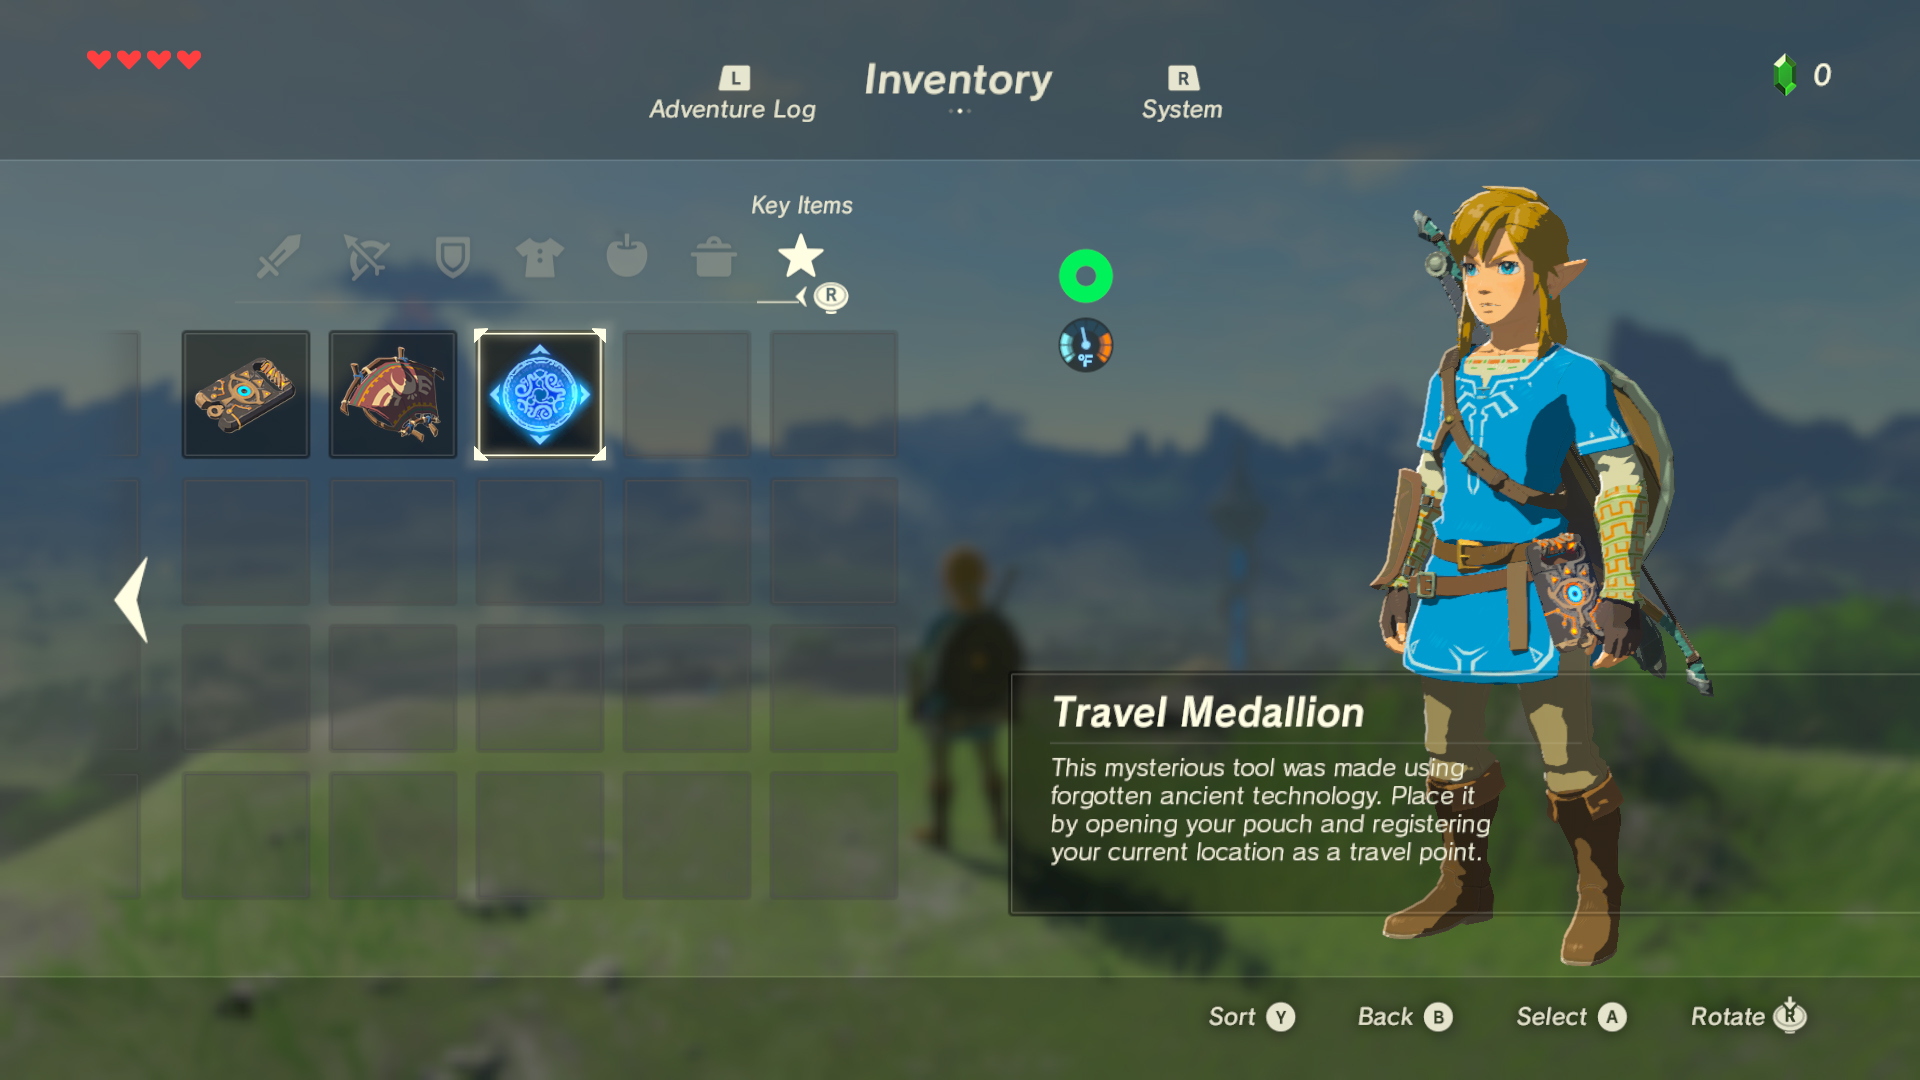 Nintendo reveals new details about Zelda: Breath of the Wild